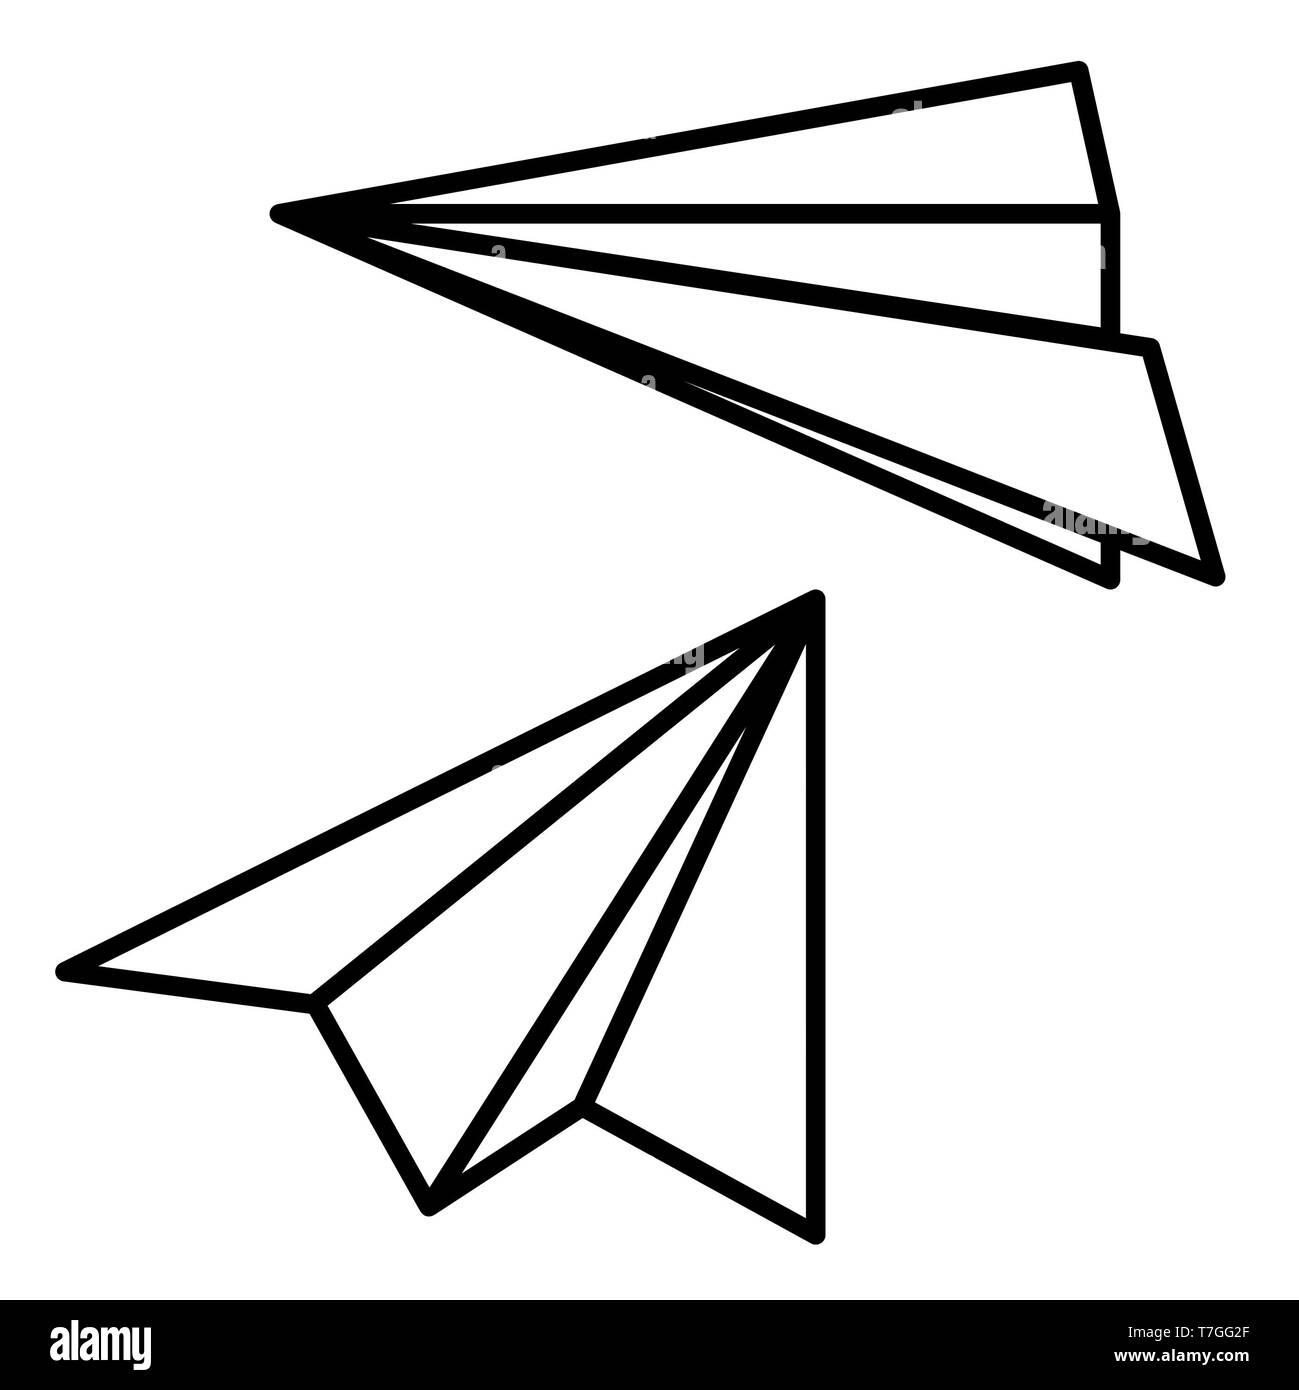 Paper Plane Icon, Vector Illustration, Education Outline - Stock Image